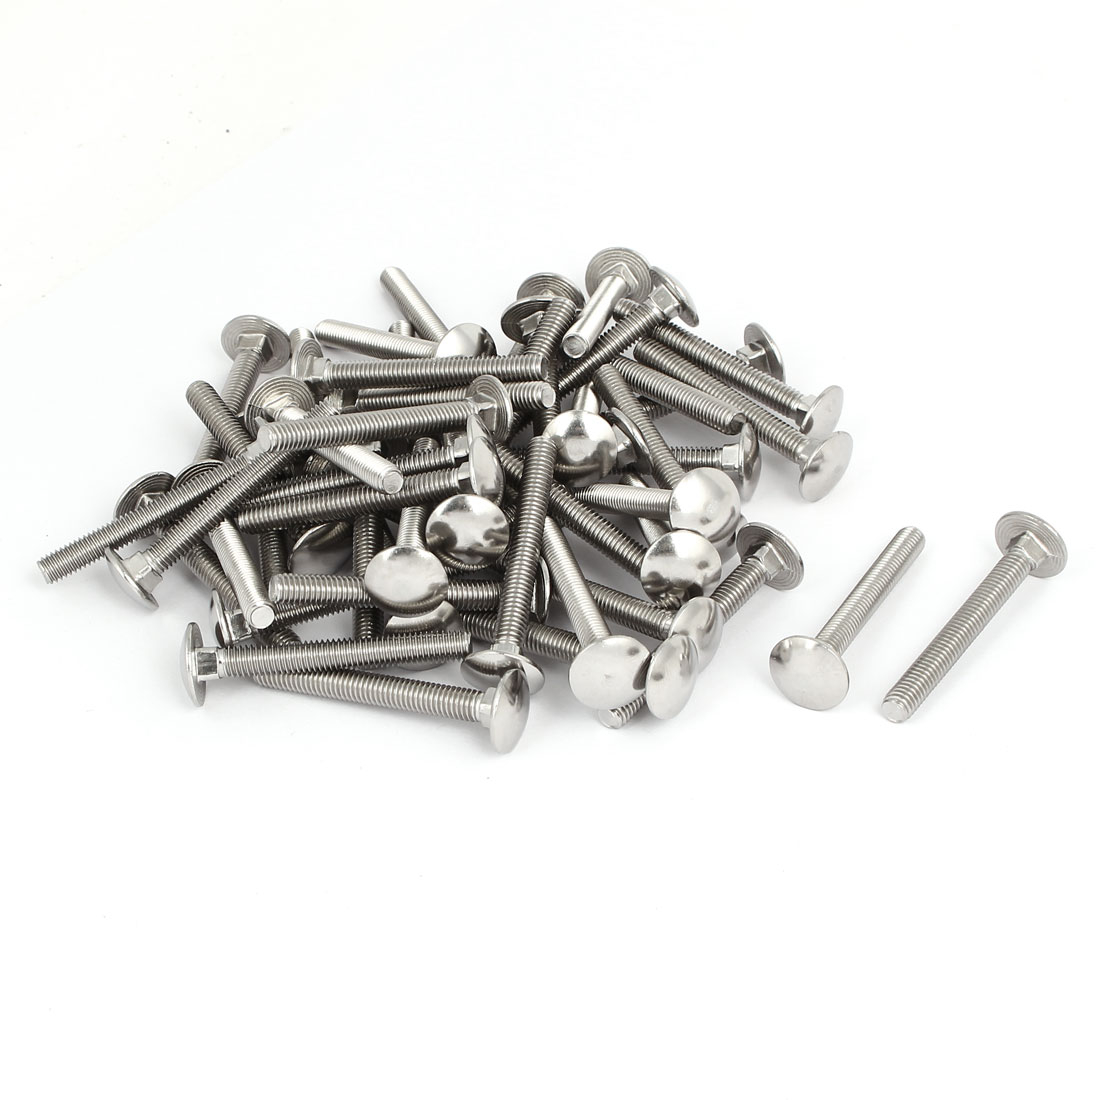 M6x50mm 304 Stainless Steel Fully Thread Square Neck Carriage Bolts DIN603 50pcs